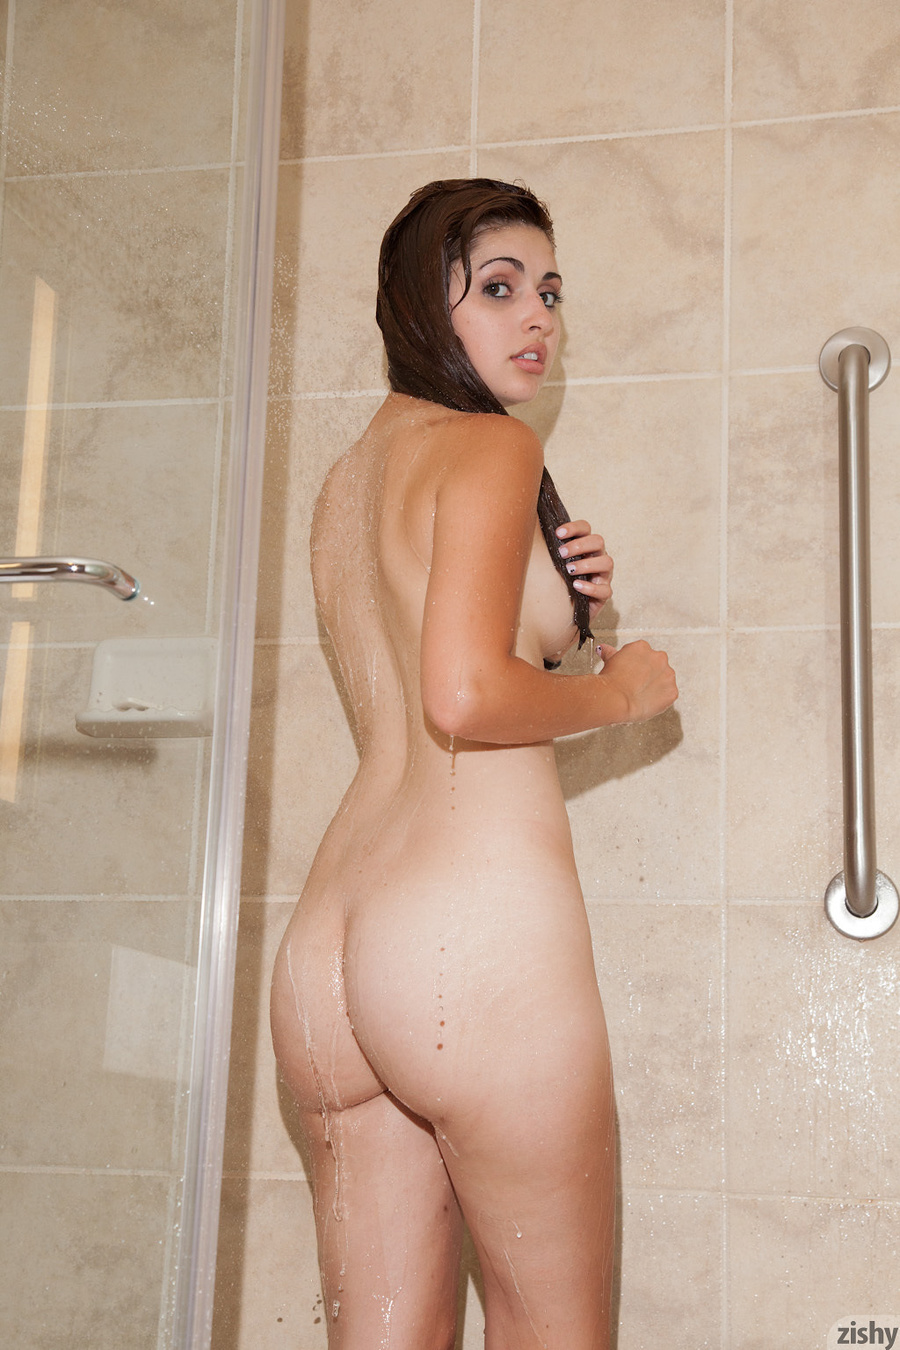 Hot Teen Girl In Shower